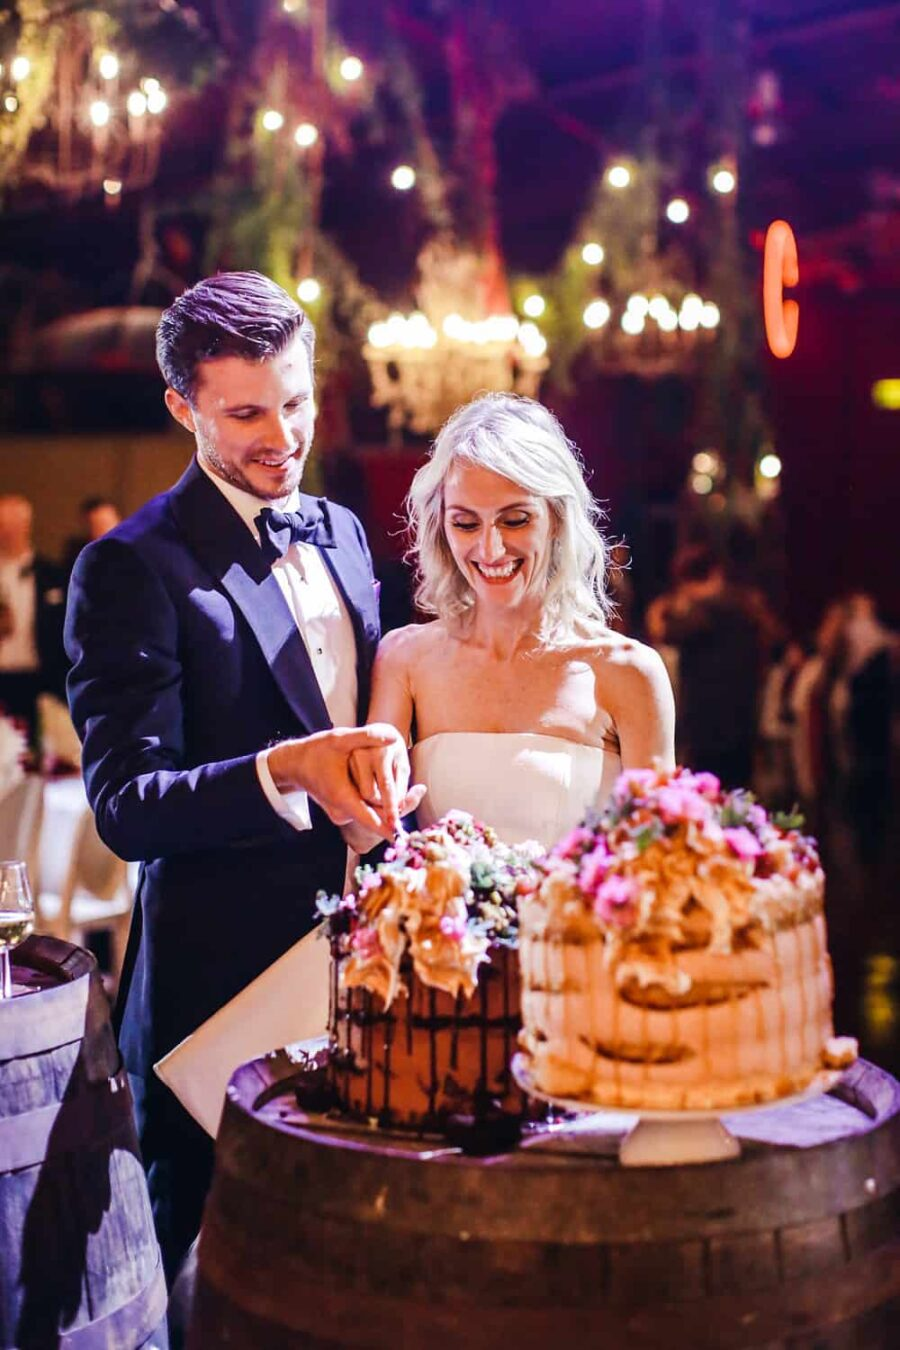 decadent wedding cakes by Andy Bowdy